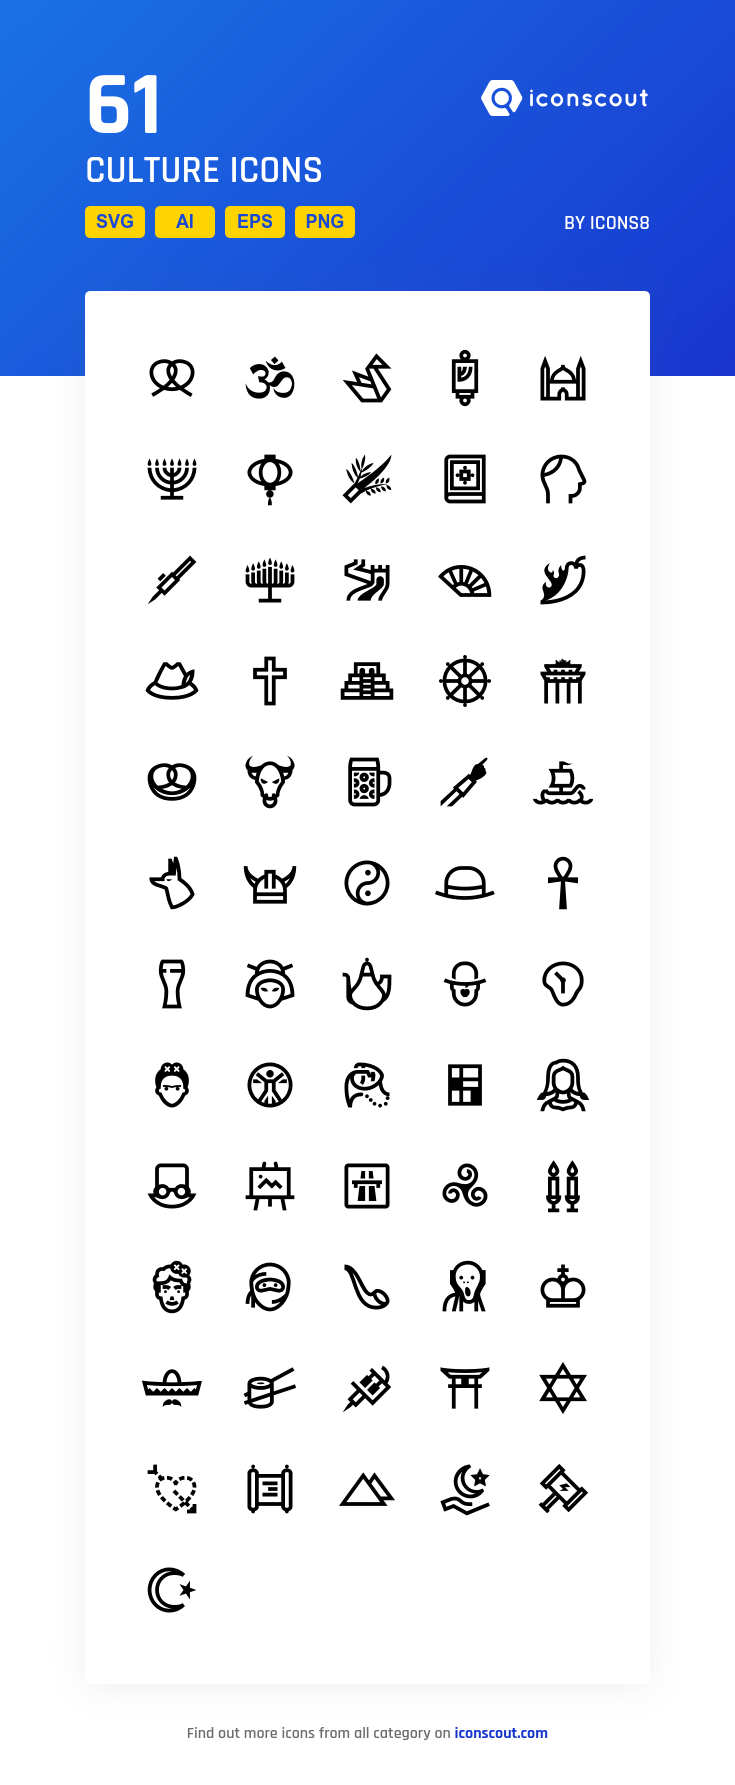 Download Culture Icon pack Available in SVG, PNG, EPS